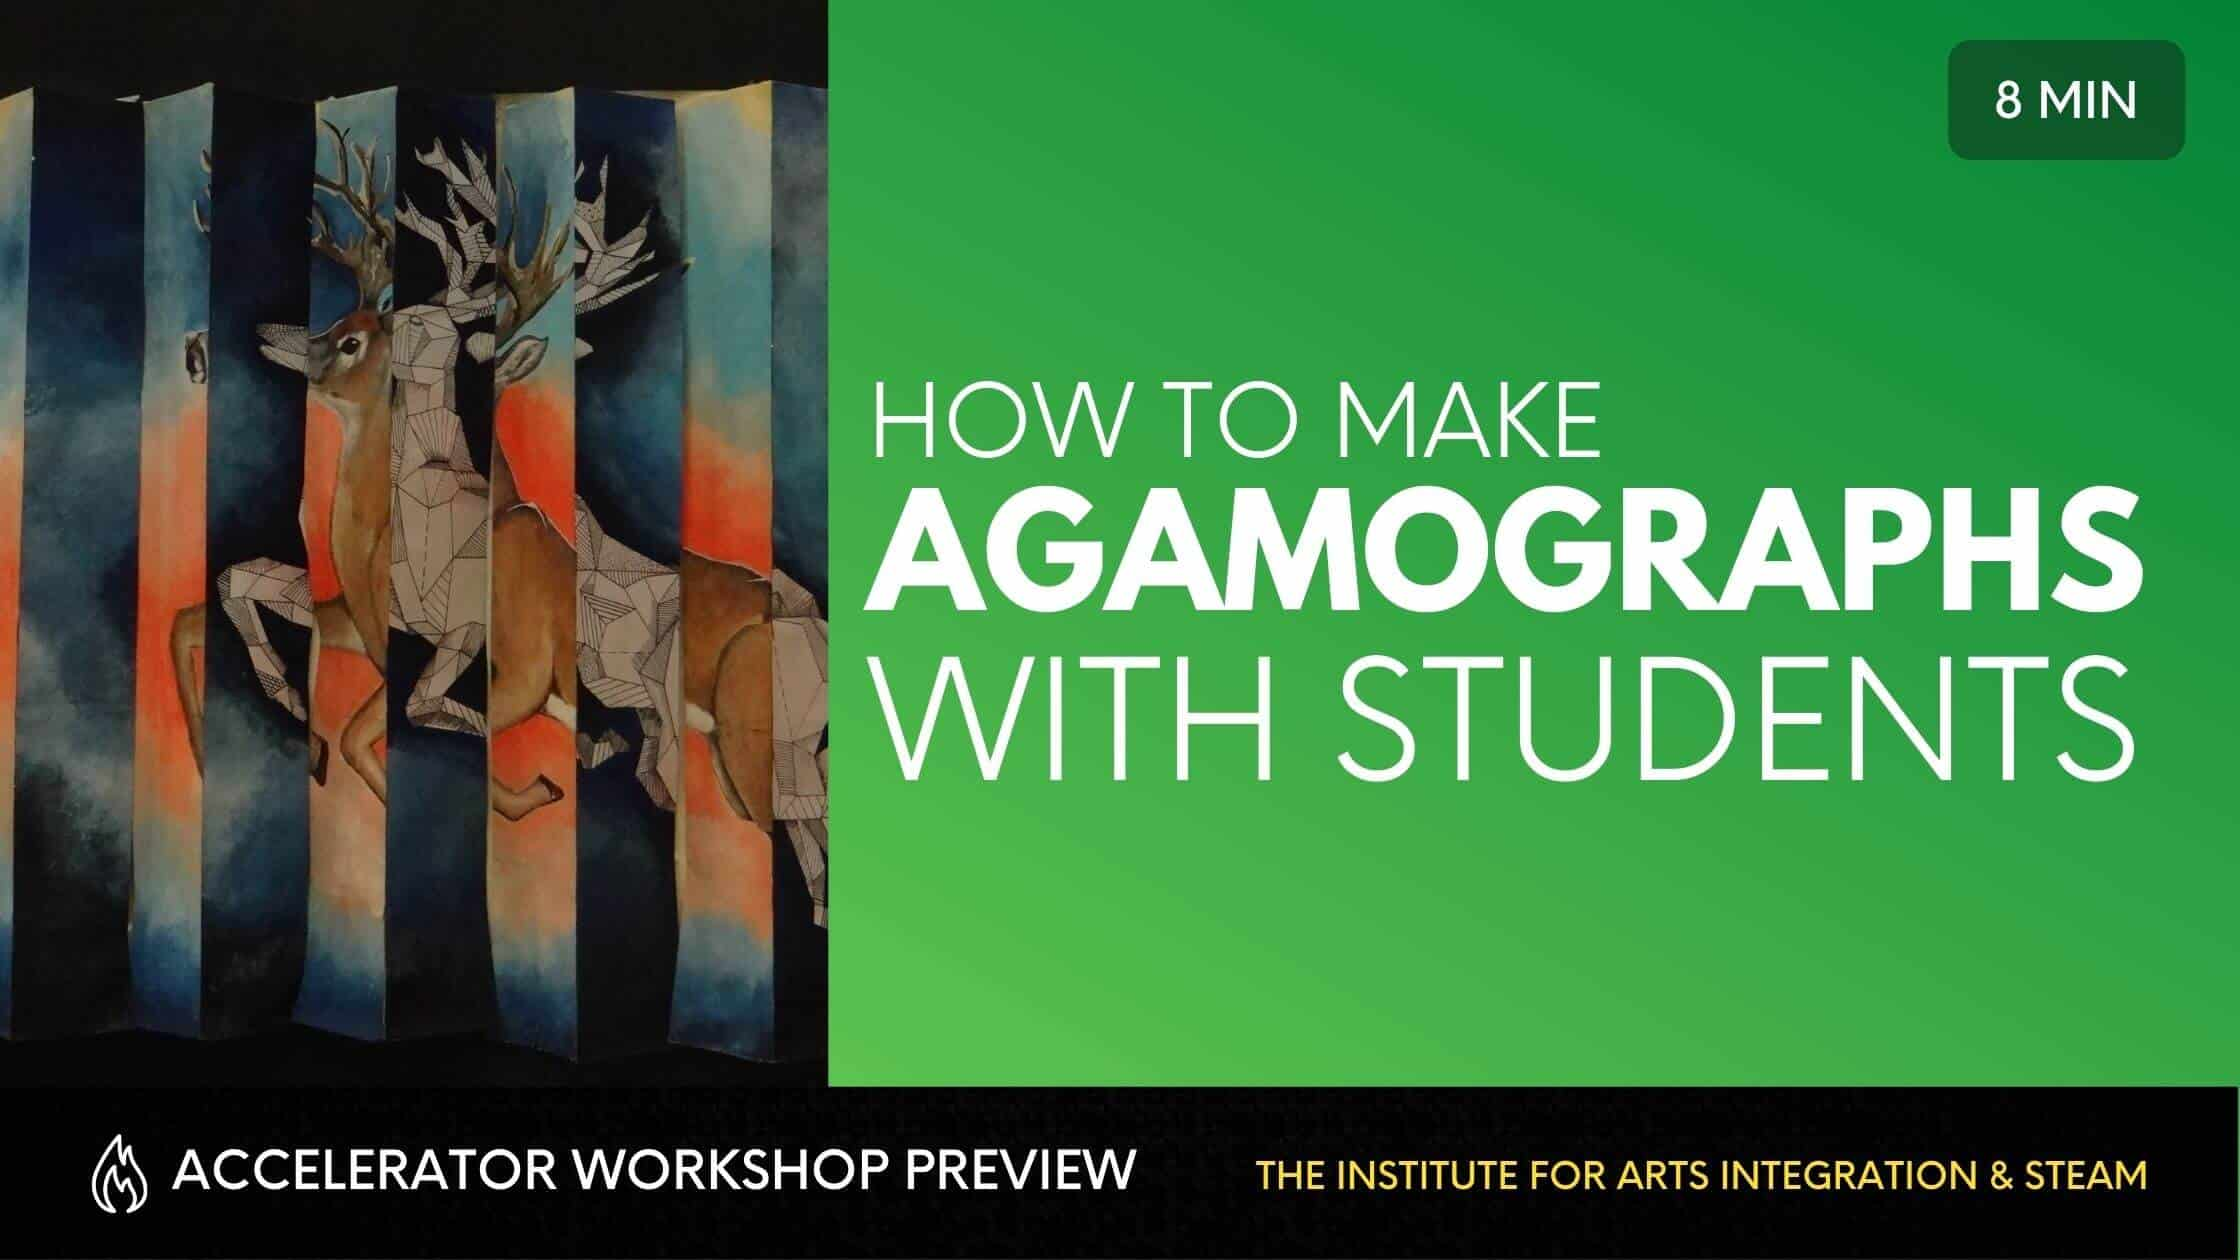 HOW TO USE AGAMOGRAPHS WITH STUDENTS